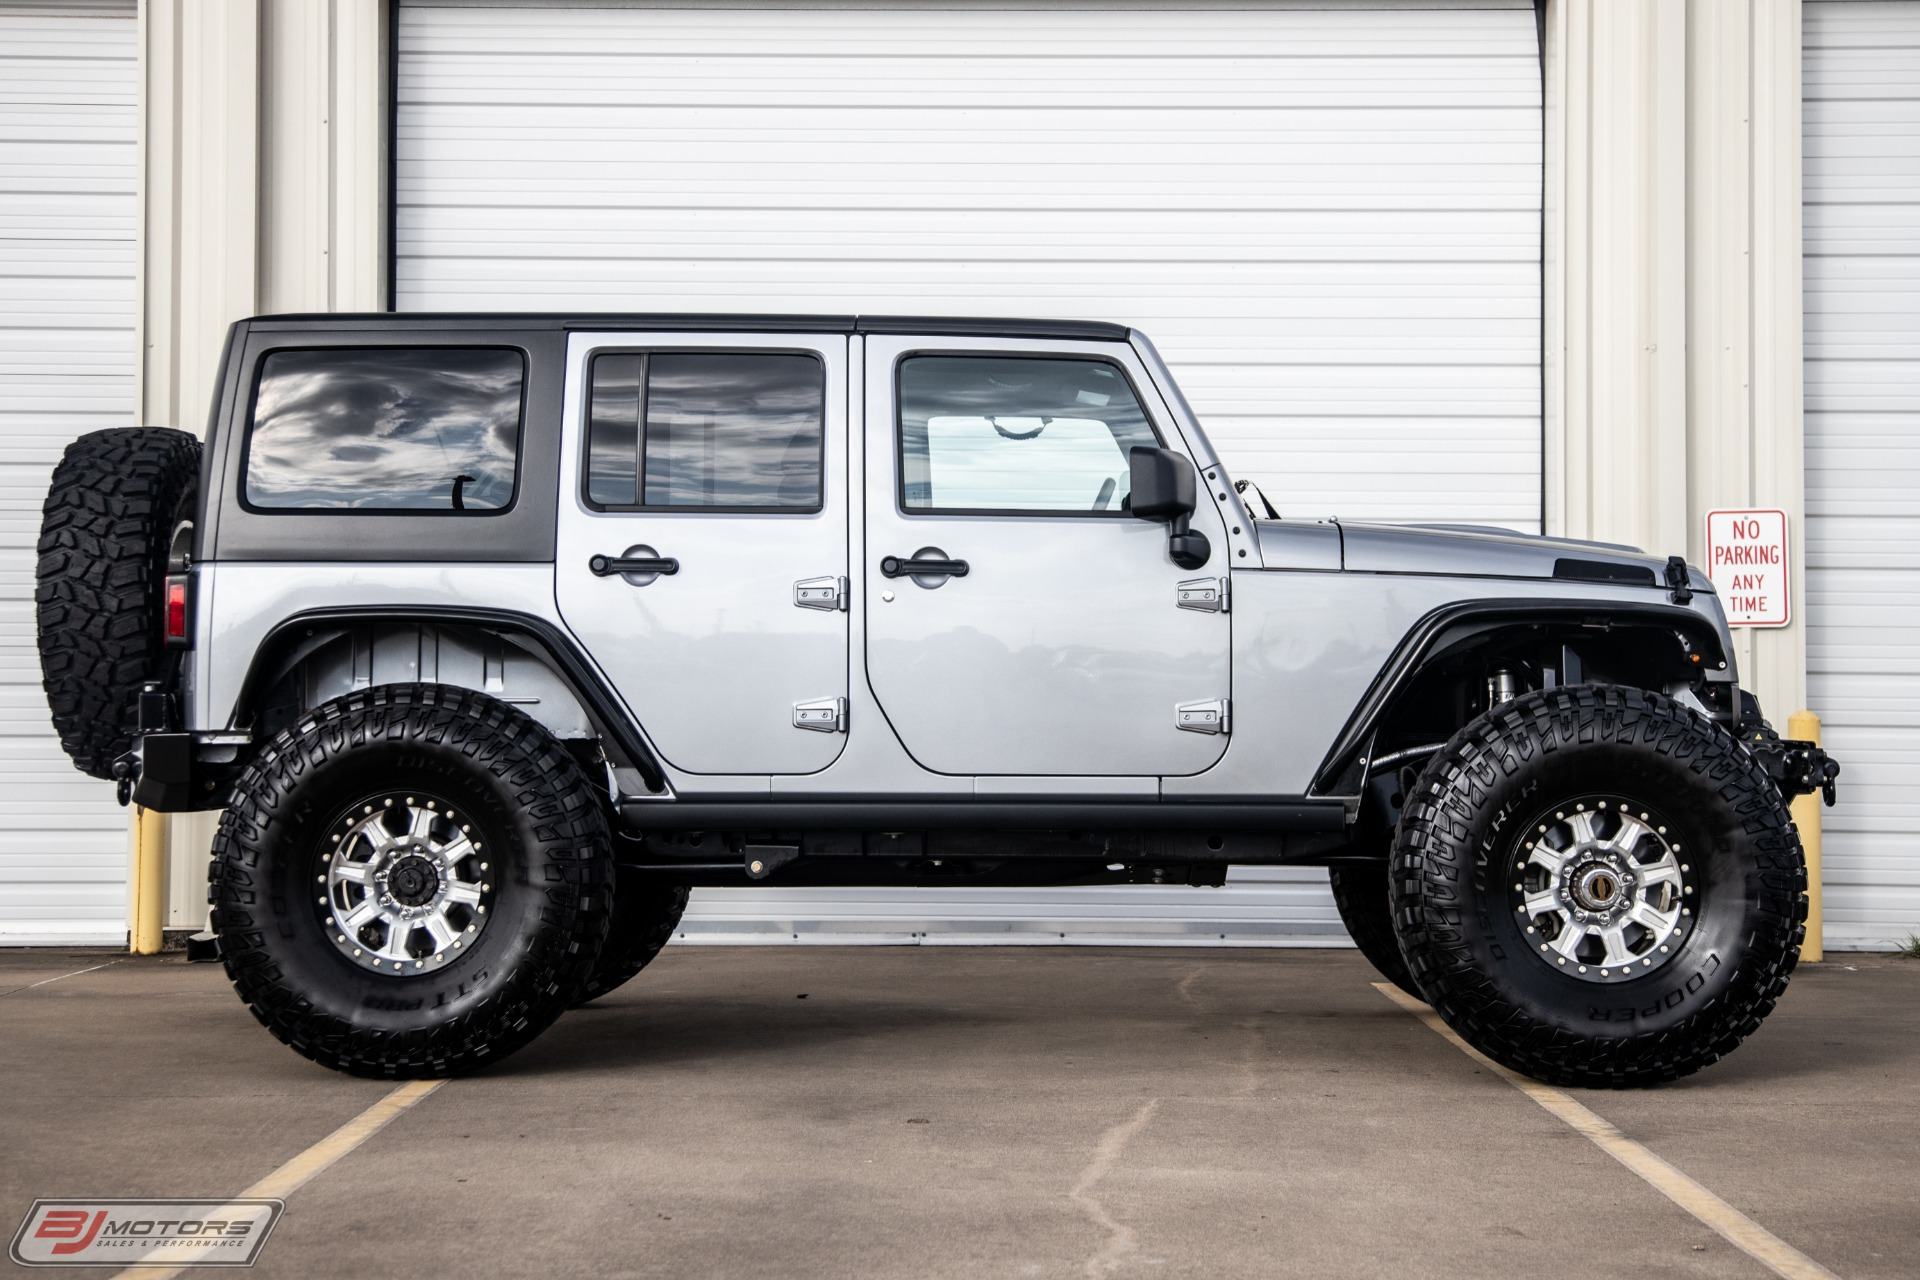 Used-2015-Jeep-Wrangler-Unlimited-Rubicon-LS7-Conversion